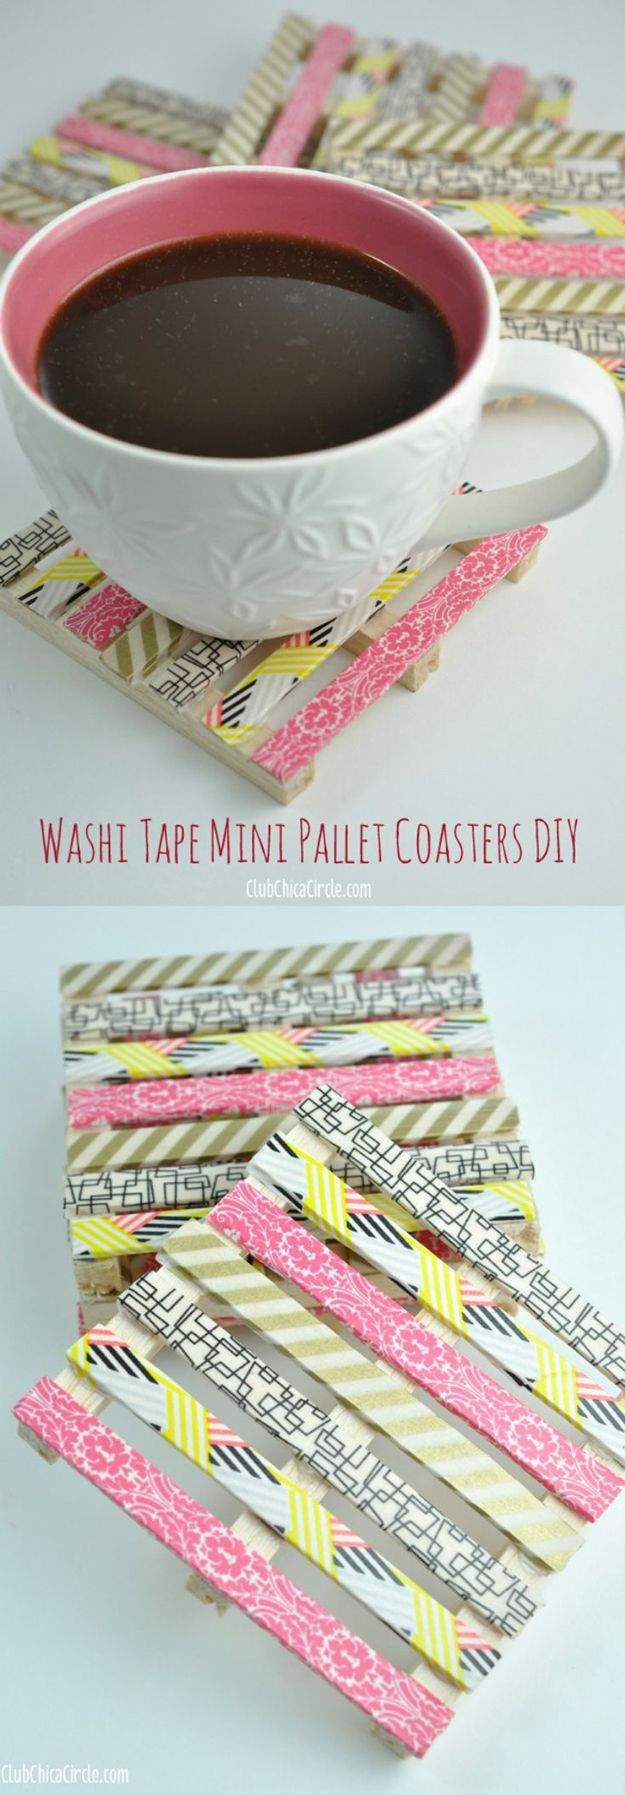 Easy Washi Tape Projects | Washi Tape Mini Wood Pallet DIY Coasters by DIY Ready at http://diyready.com/100-creative-ways-to-use-washi-tape/